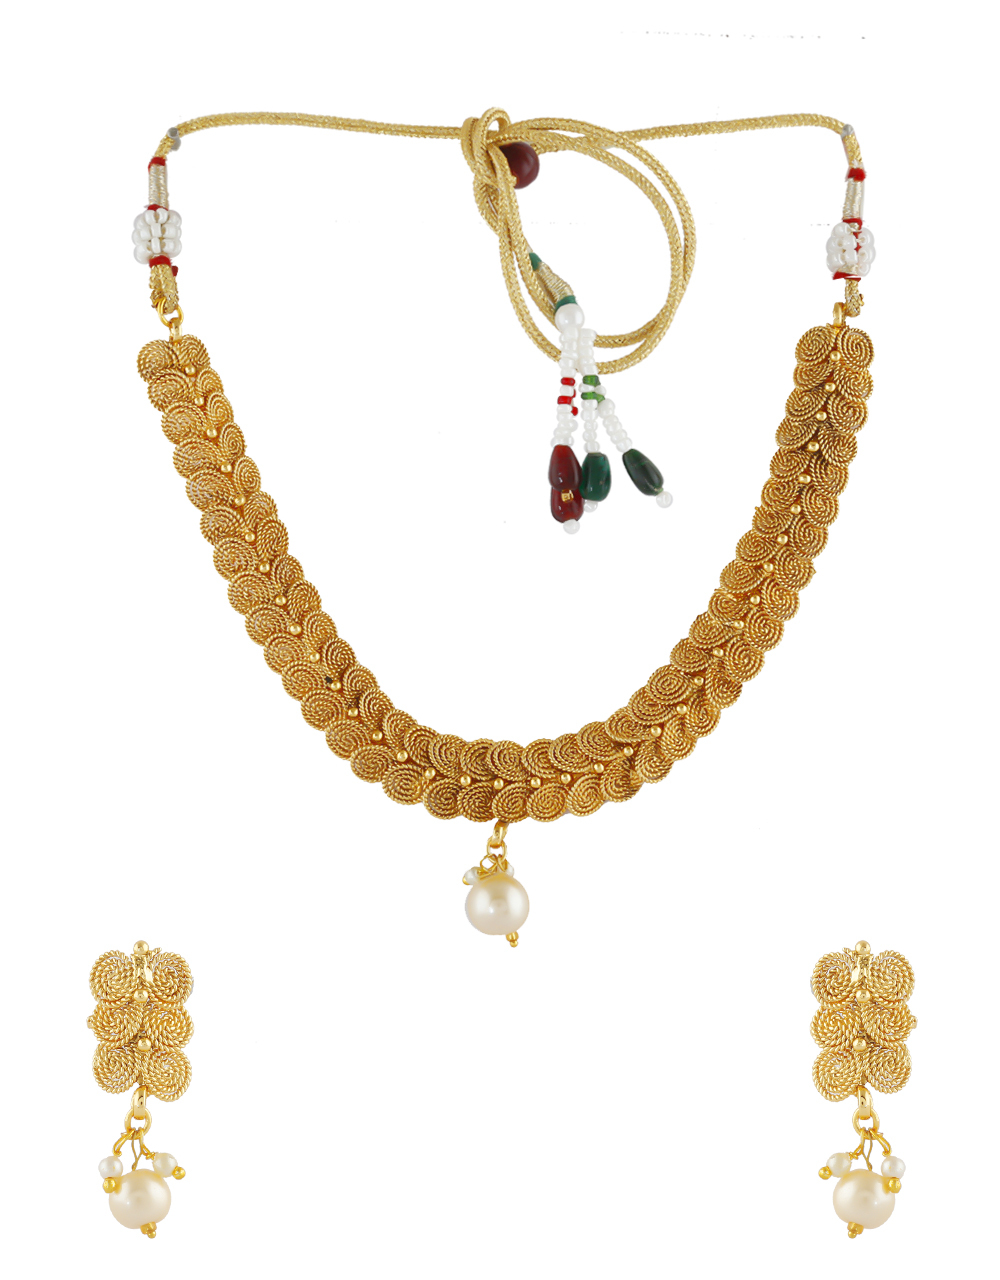 Gold Finish Traditional South Indian Jewellery Necklace